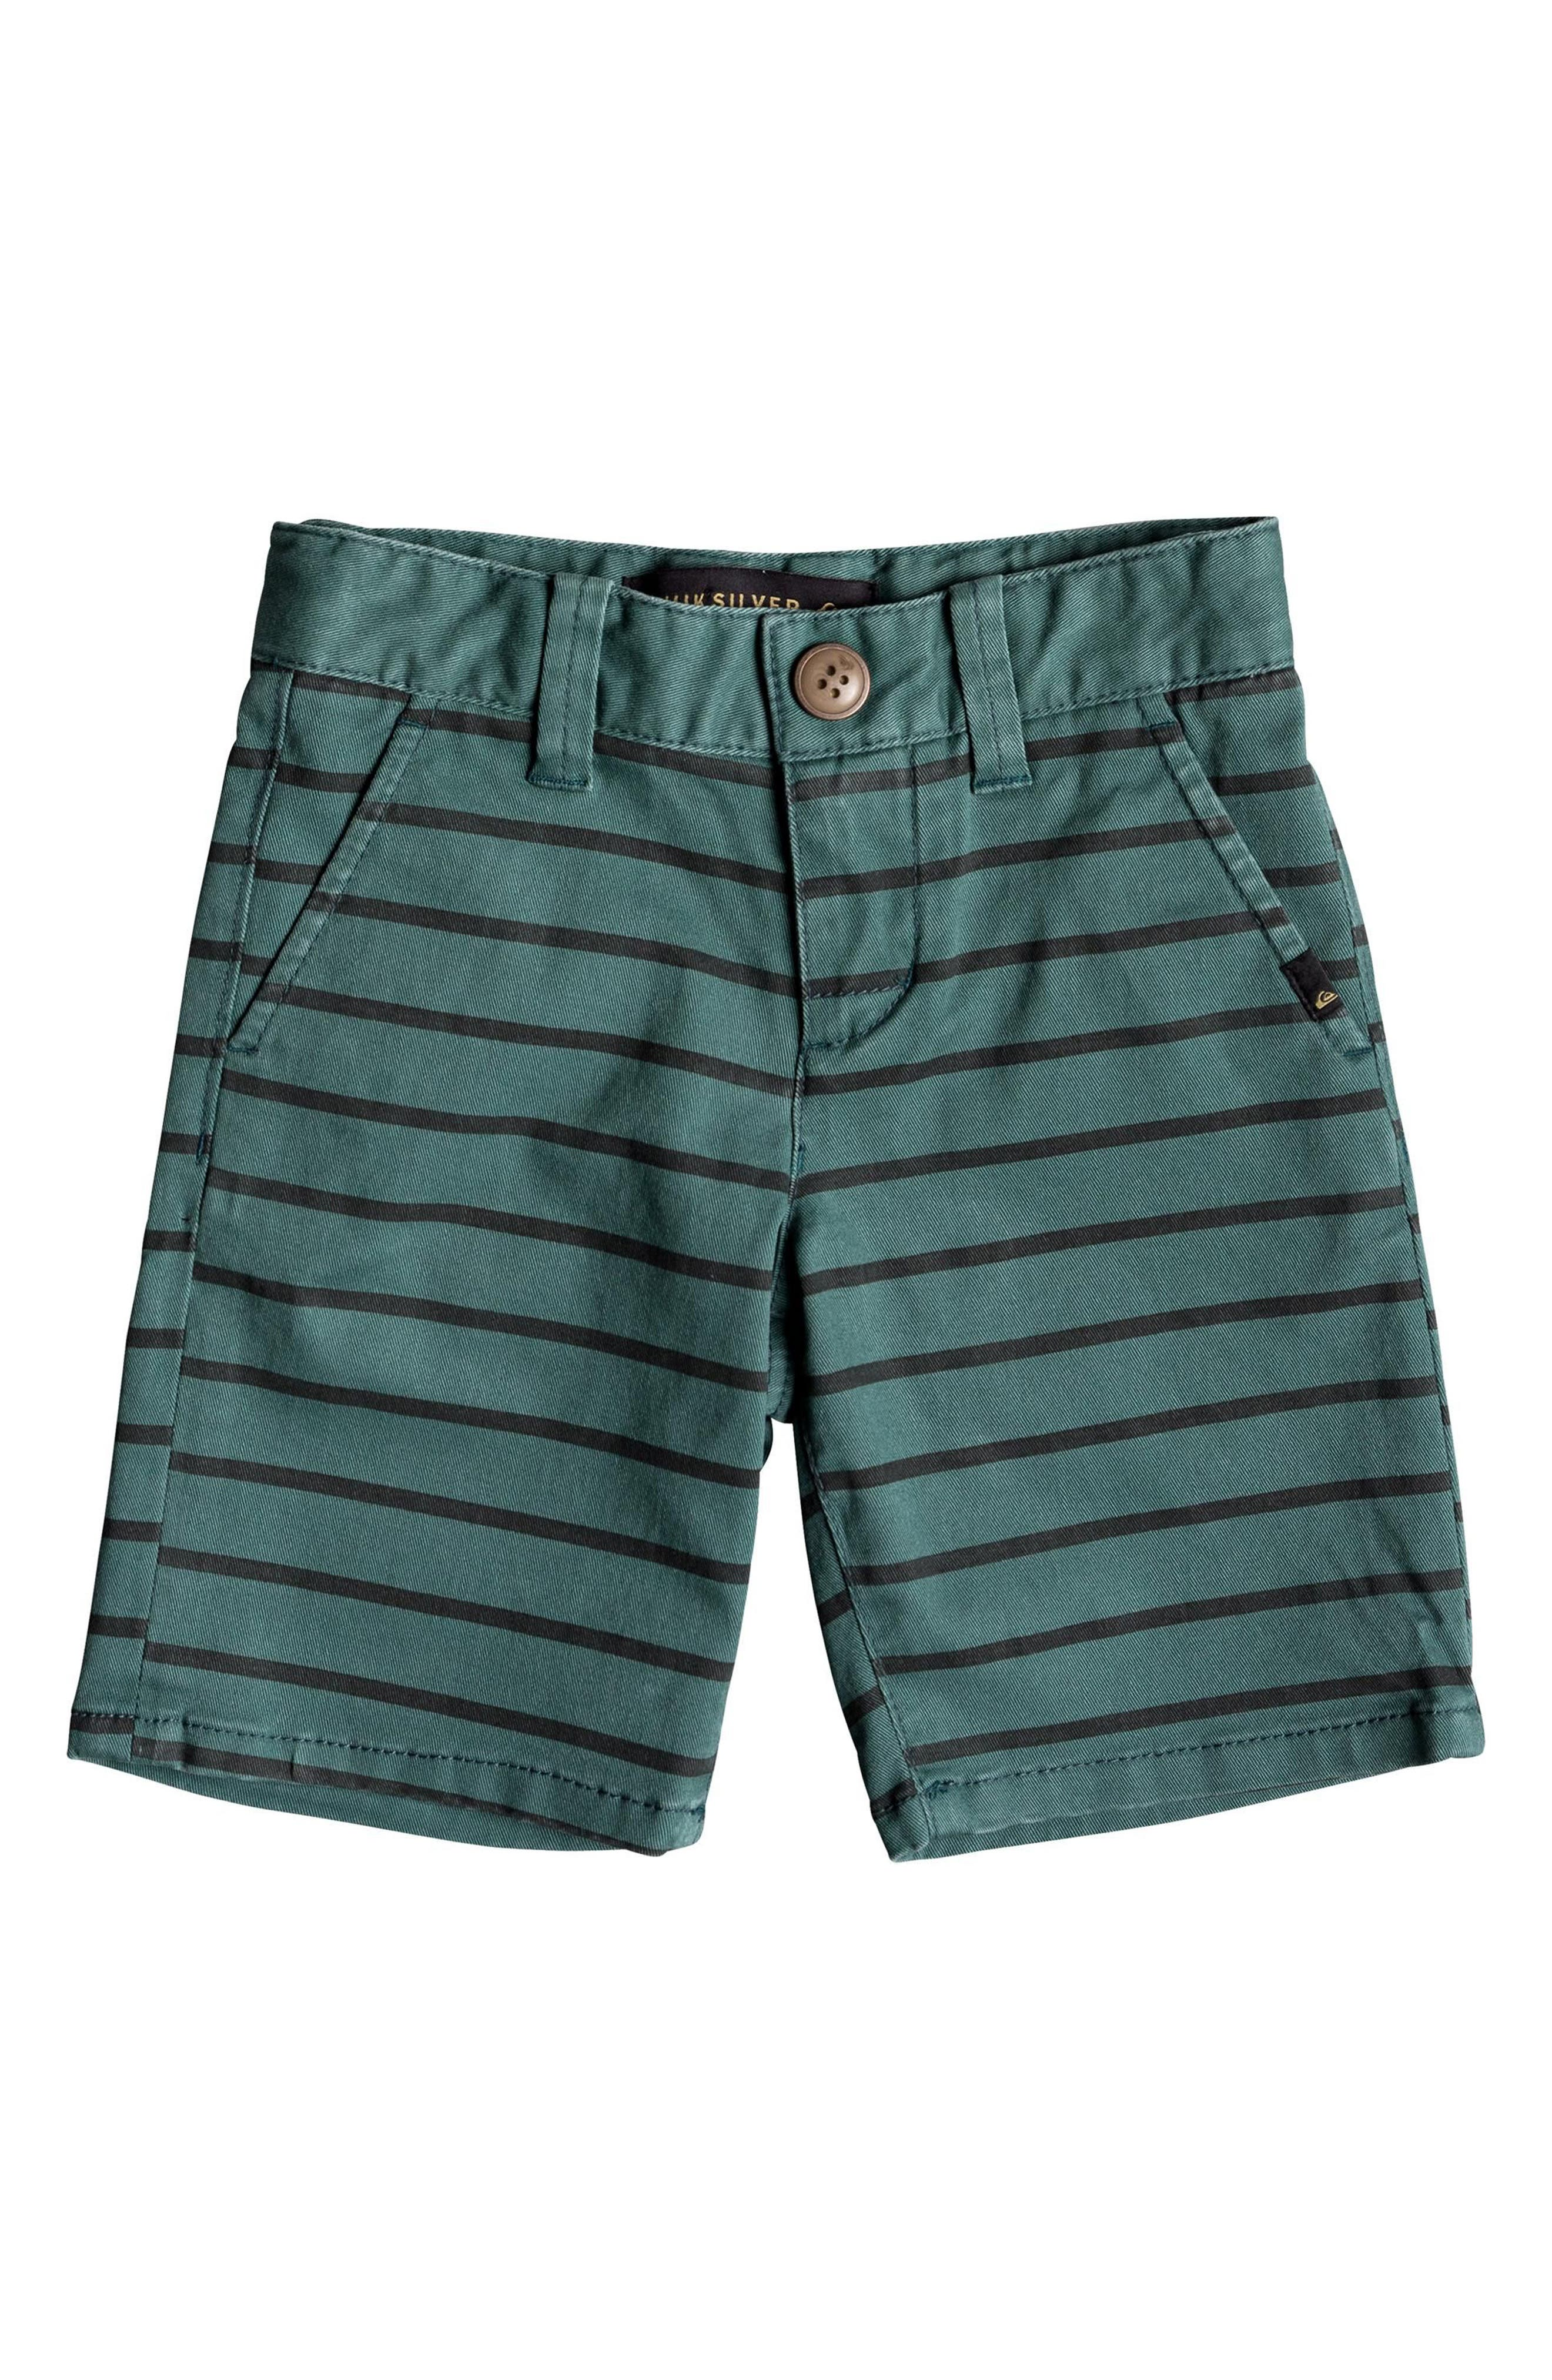 Waiku Stripe Shorts,                         Main,                         color, Mallard Green